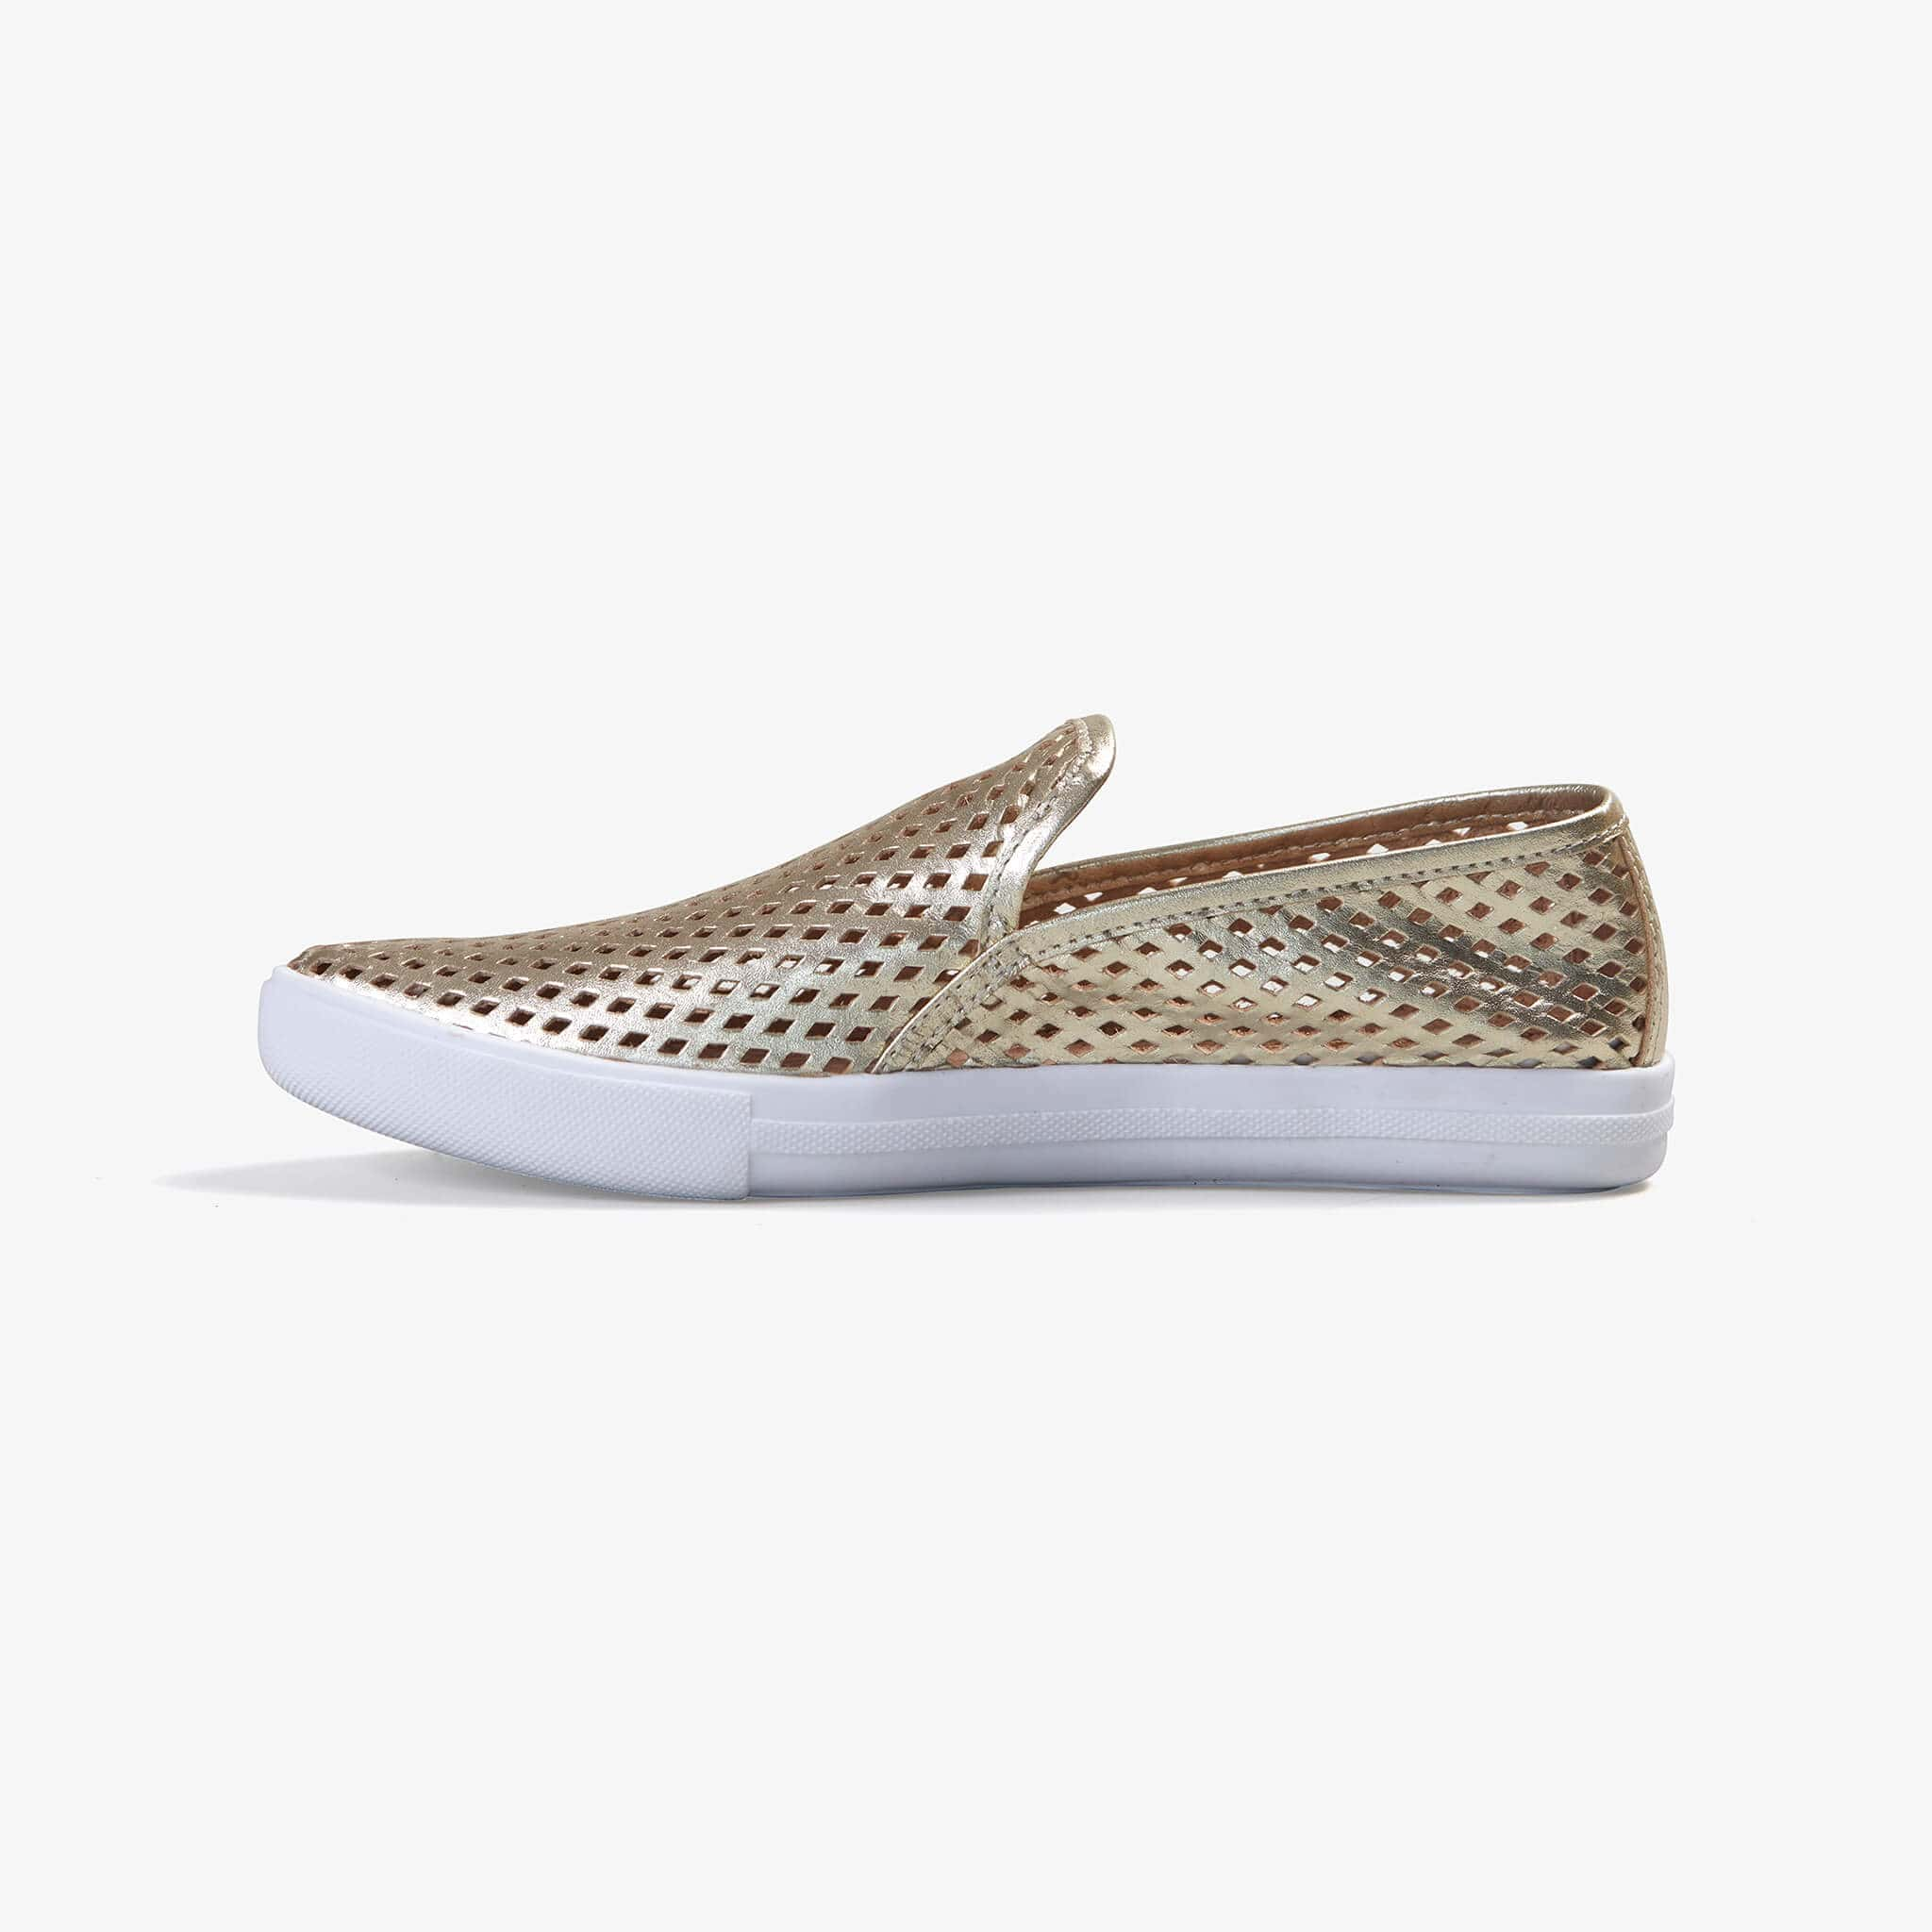 Jibs Slim Gold Slip On Sneaker Flat Shoe Side